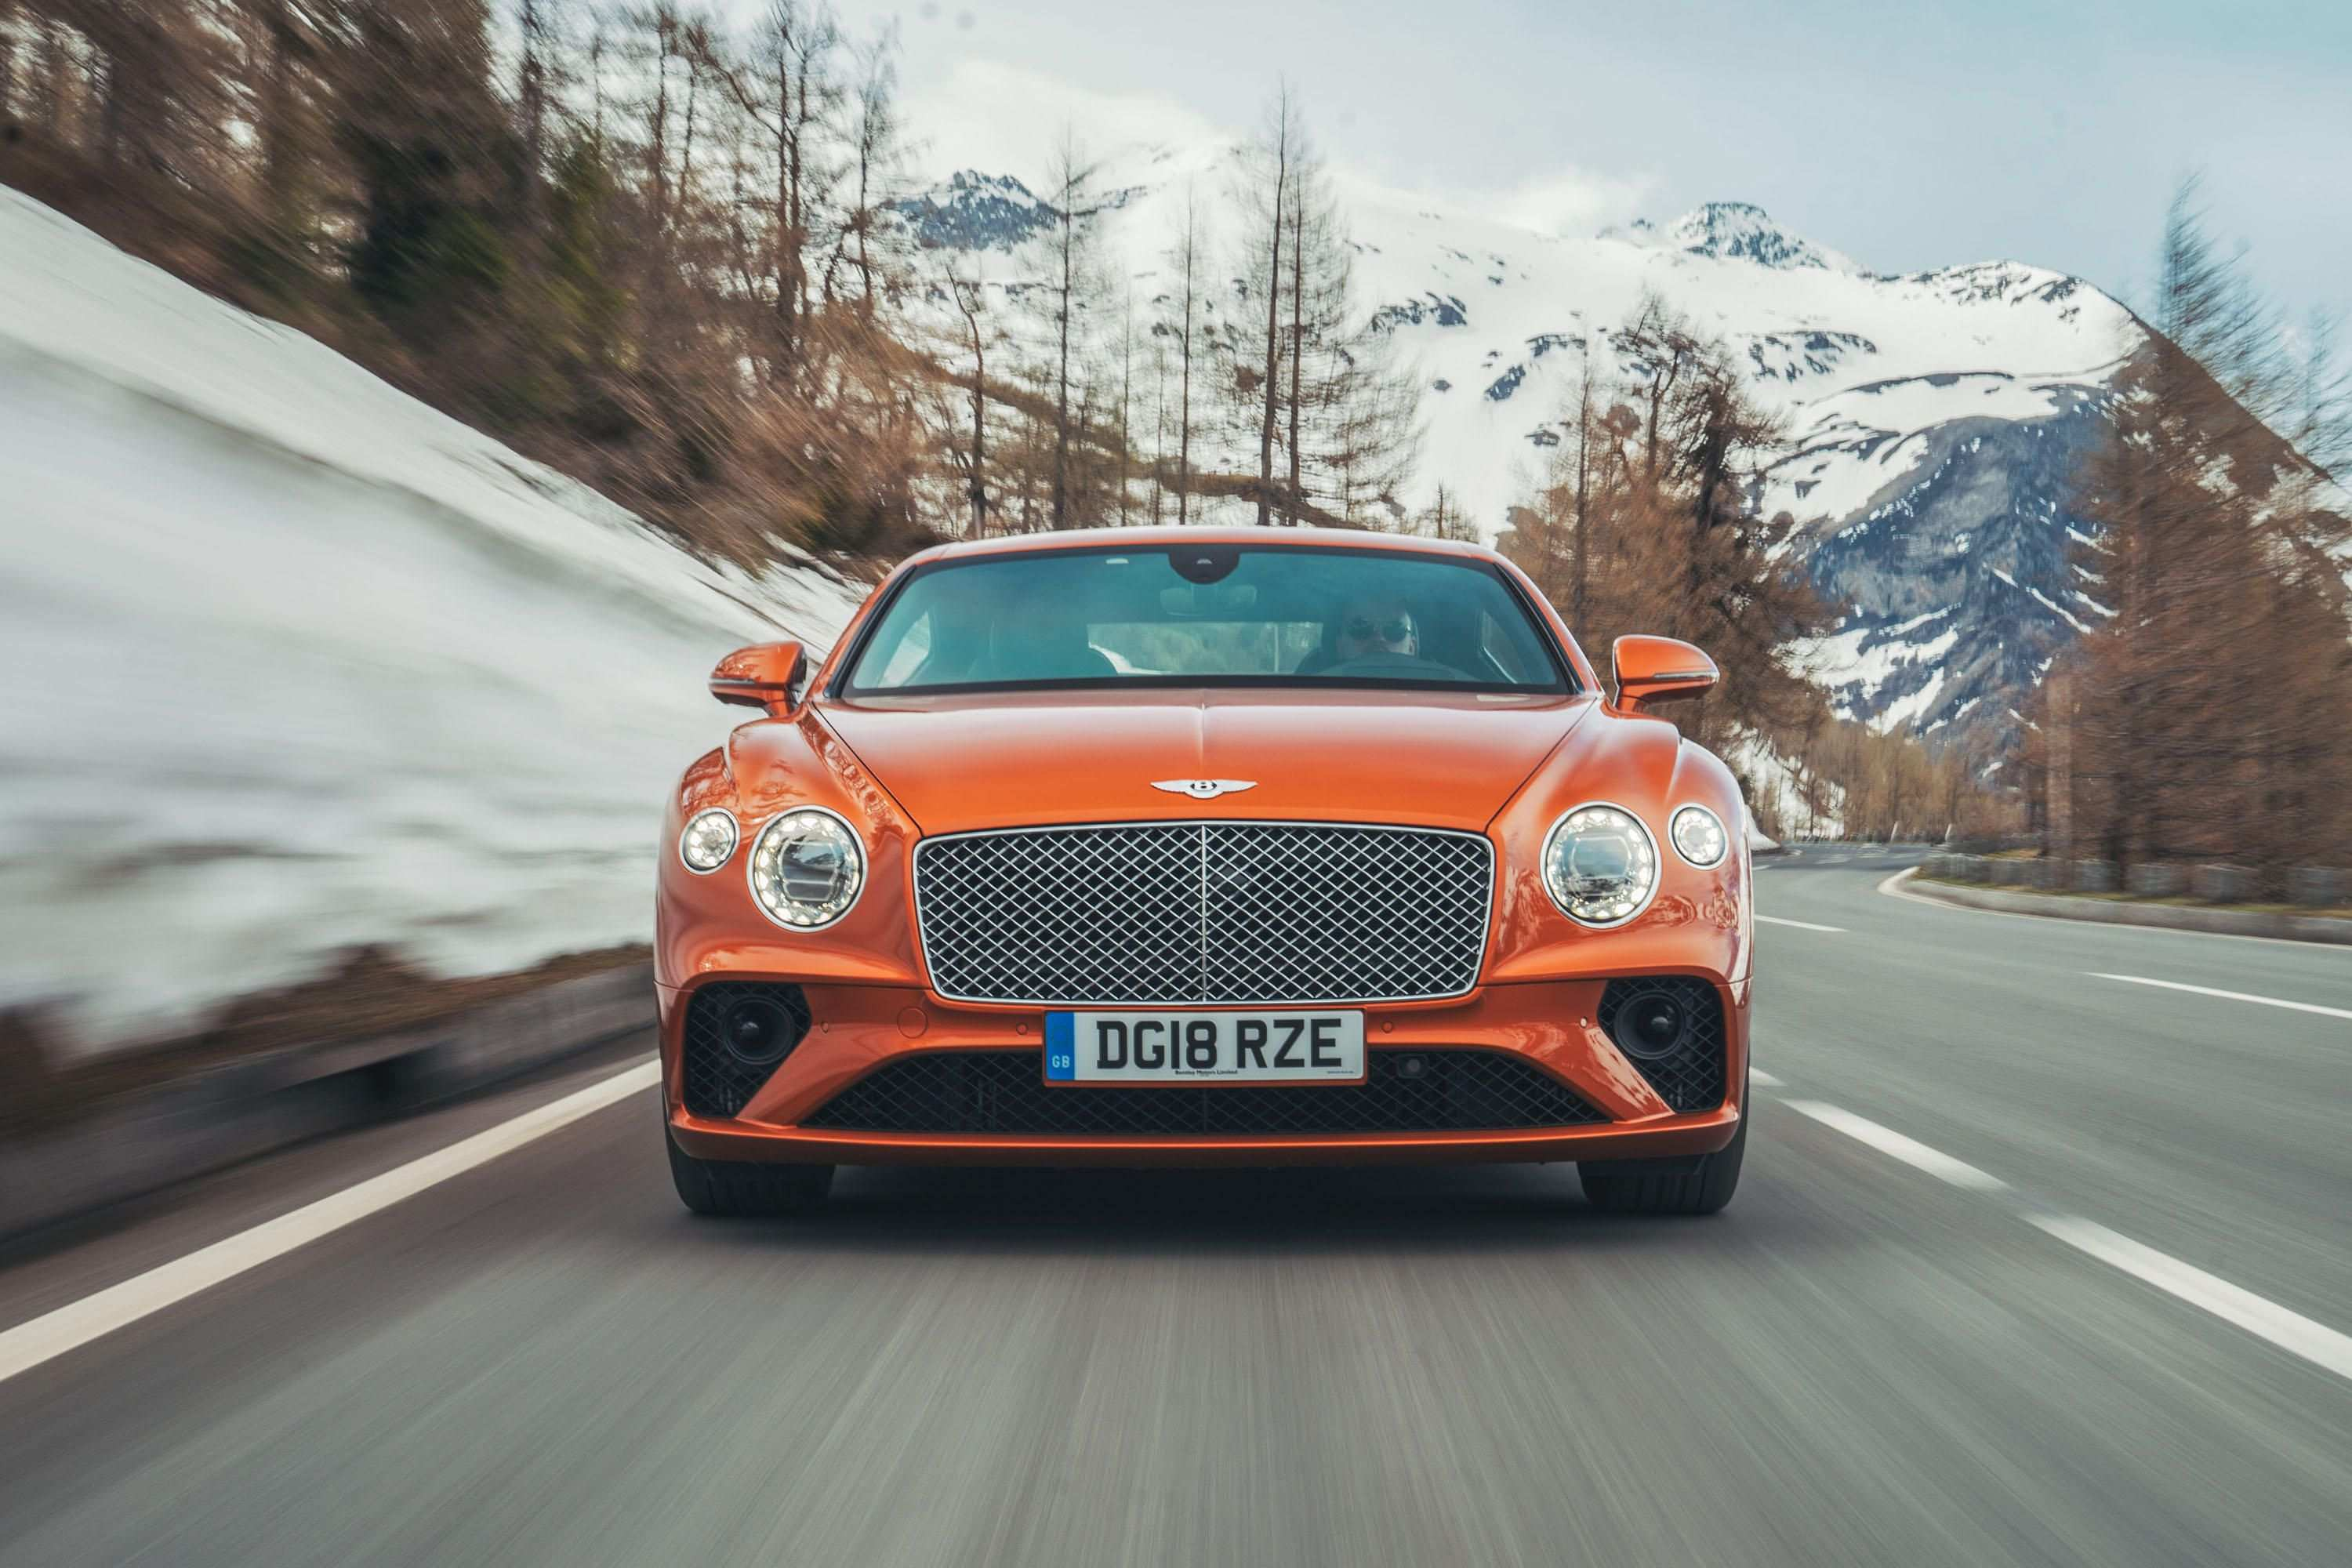 95 New 2019 Bentley Gt V8 New Concept with 2019 Bentley Gt V8